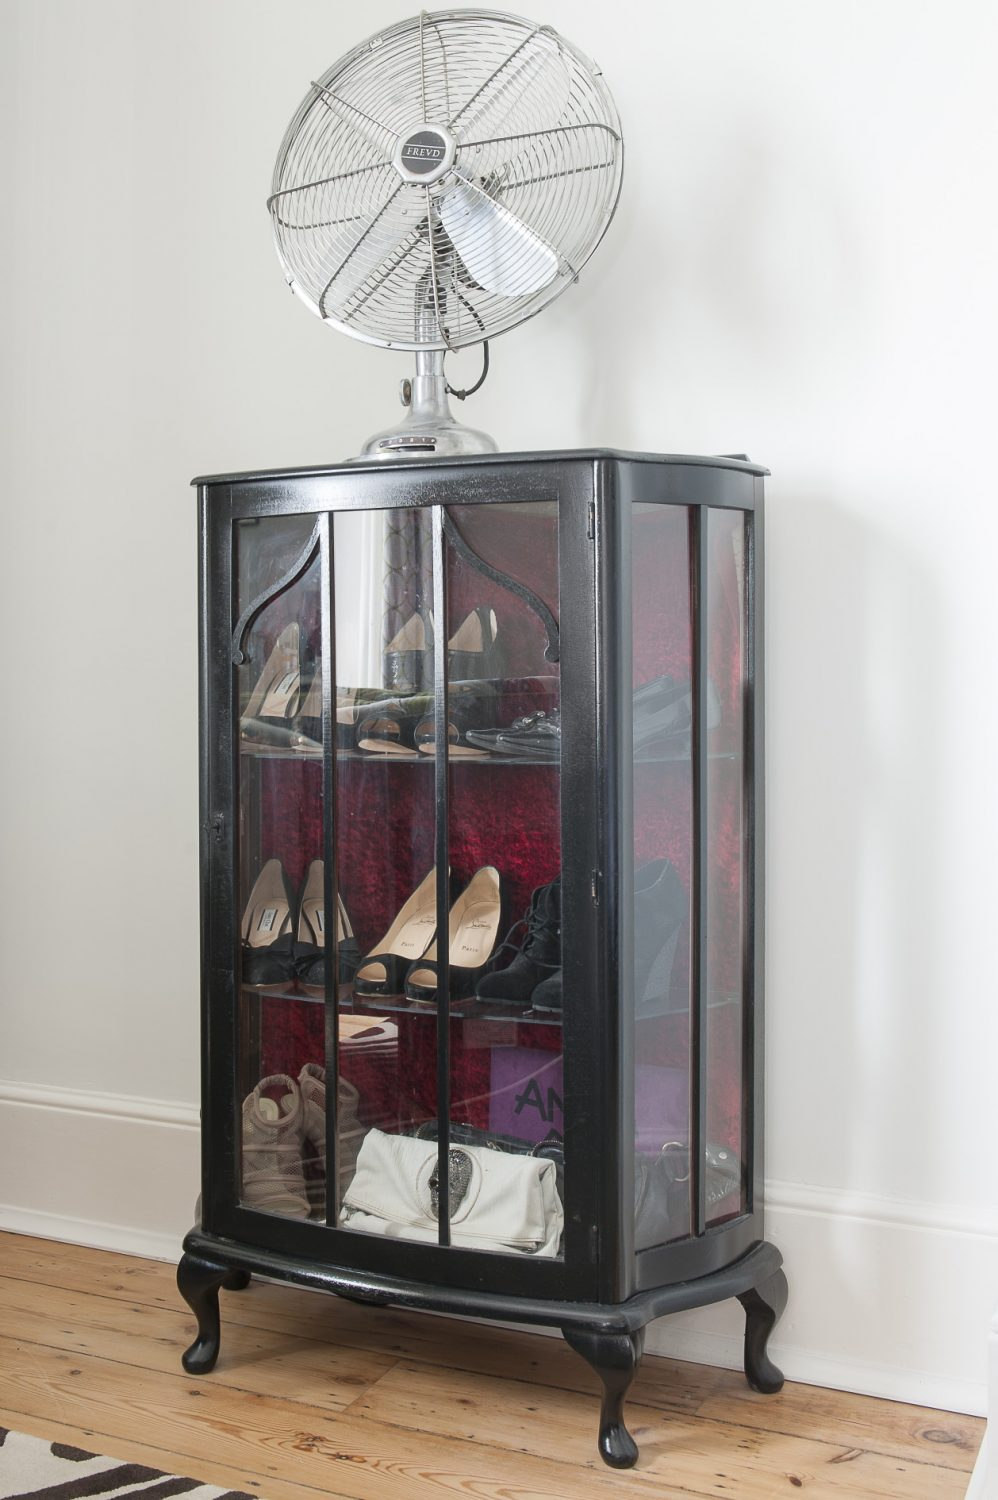 A glazed cabinet is home to her collection of shoes